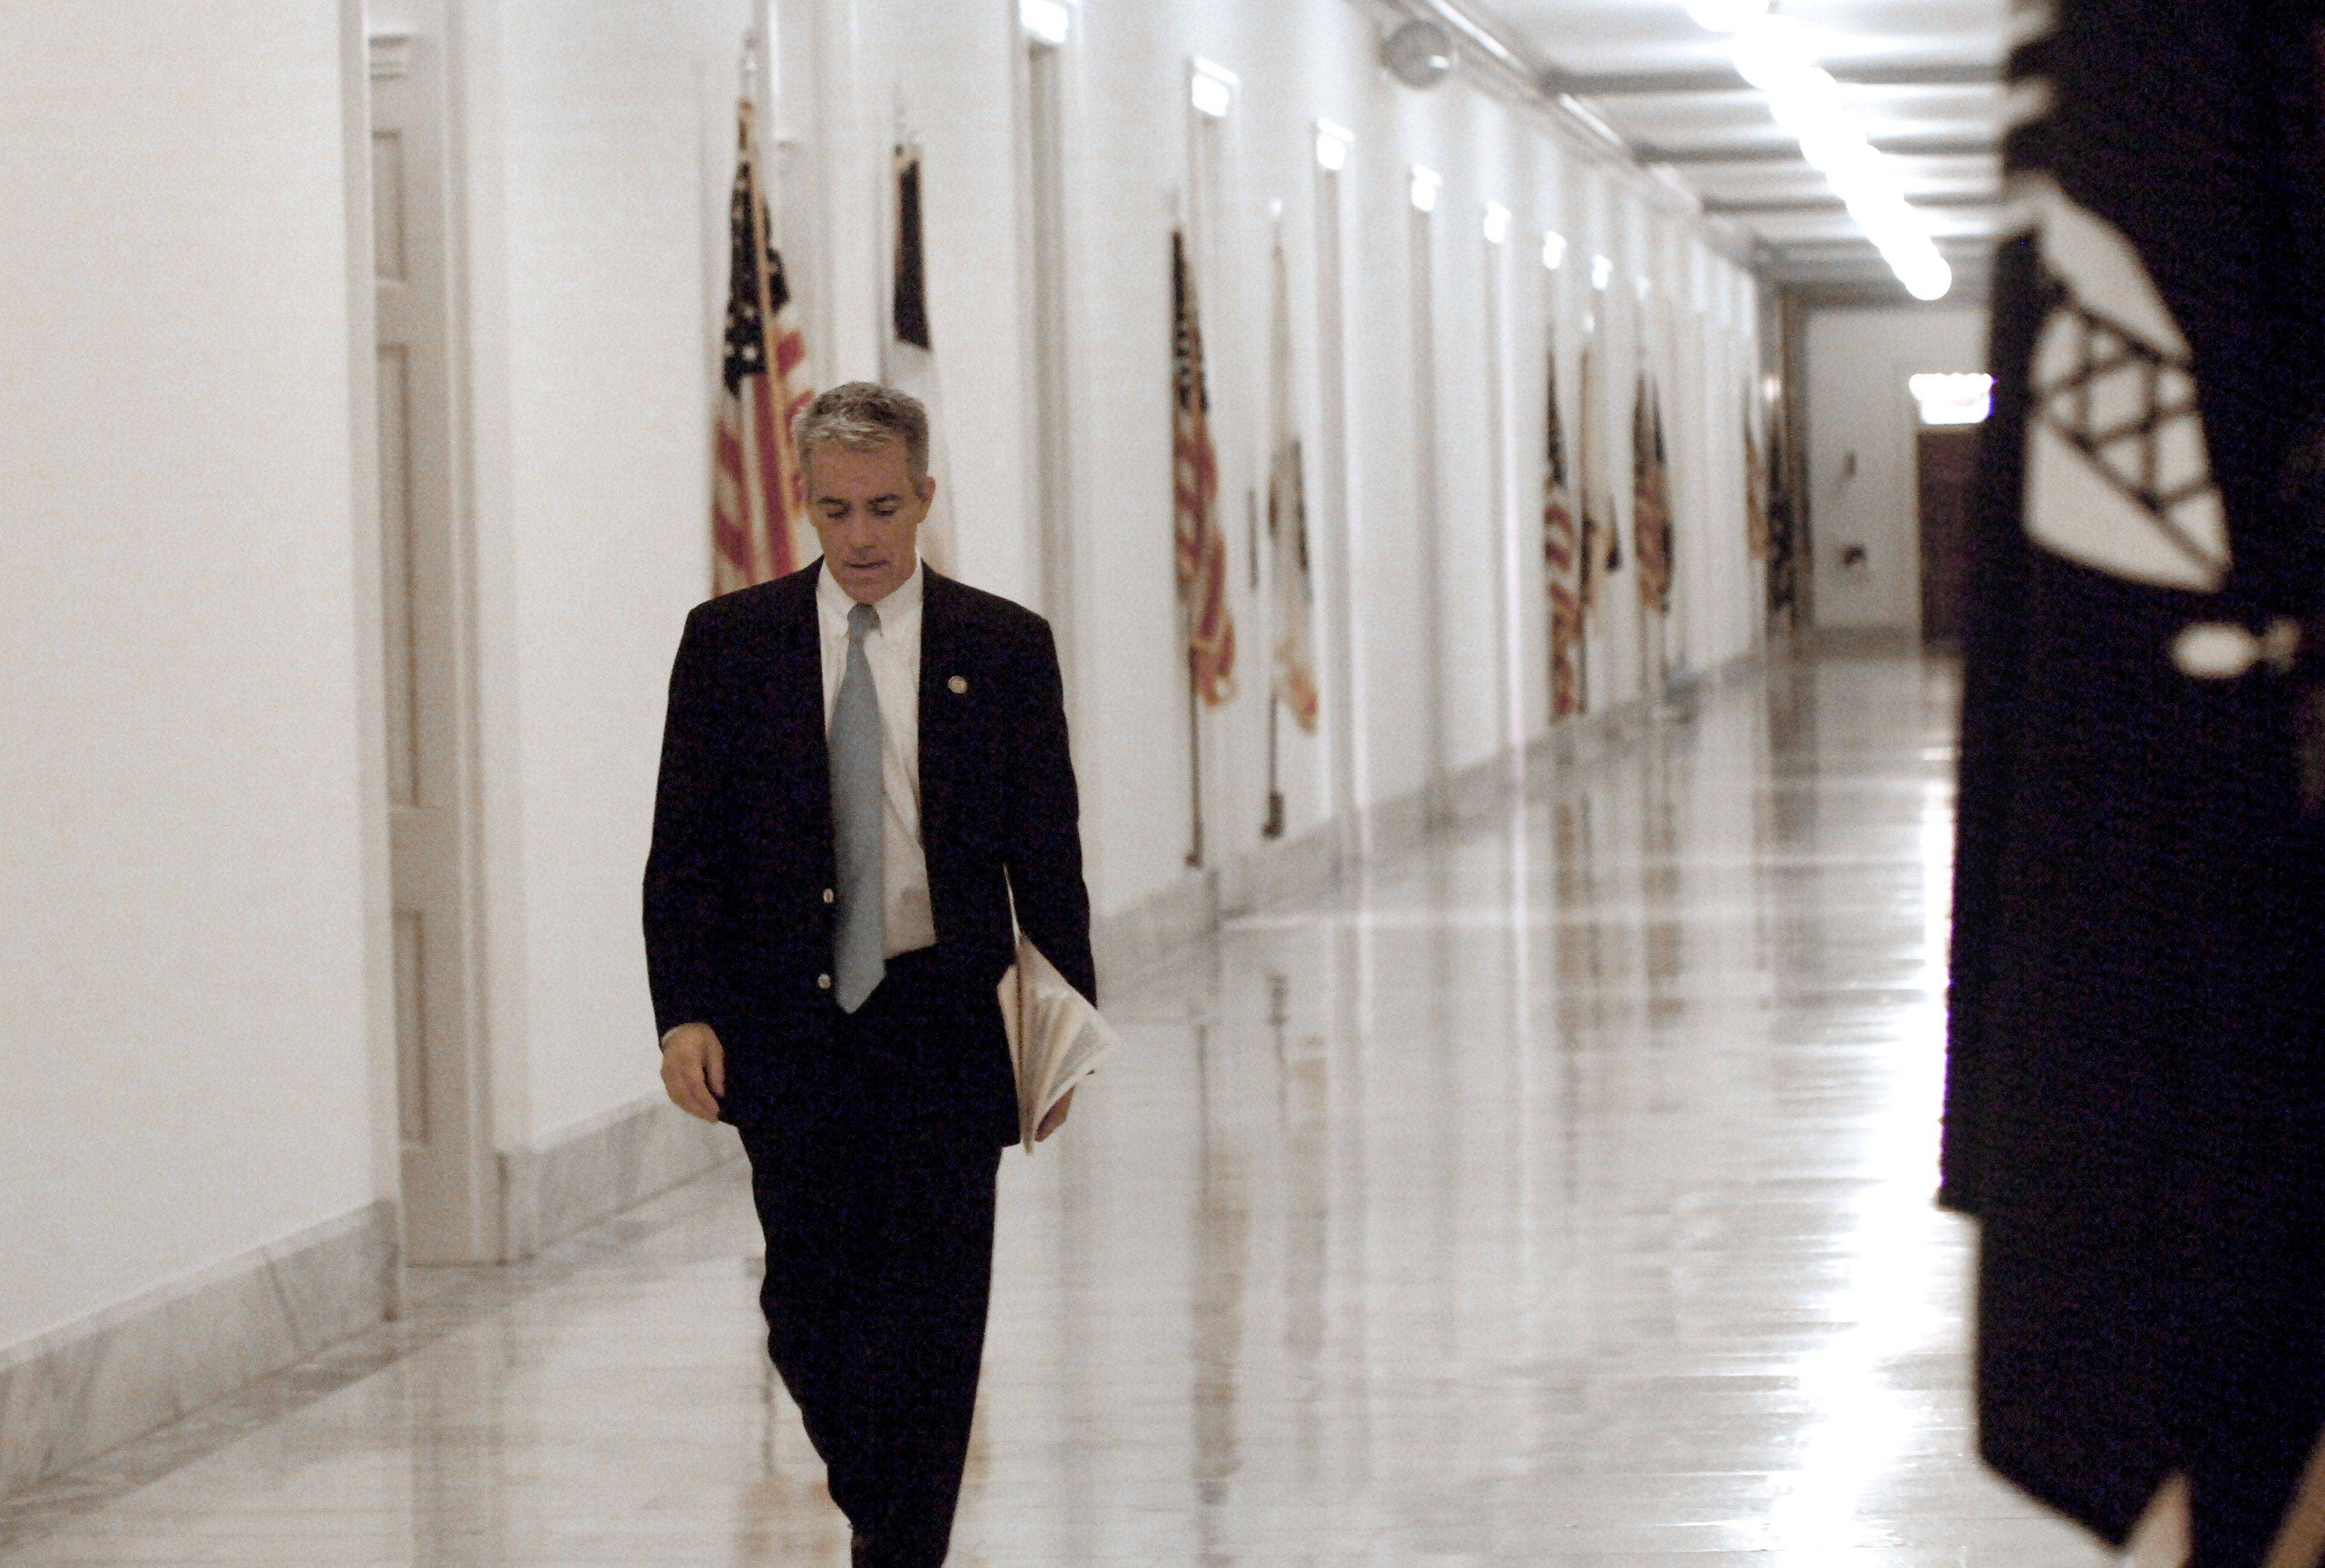 Rep. Joe Walsh walks back to his office in Washington, D.C., after an early morning meeting.